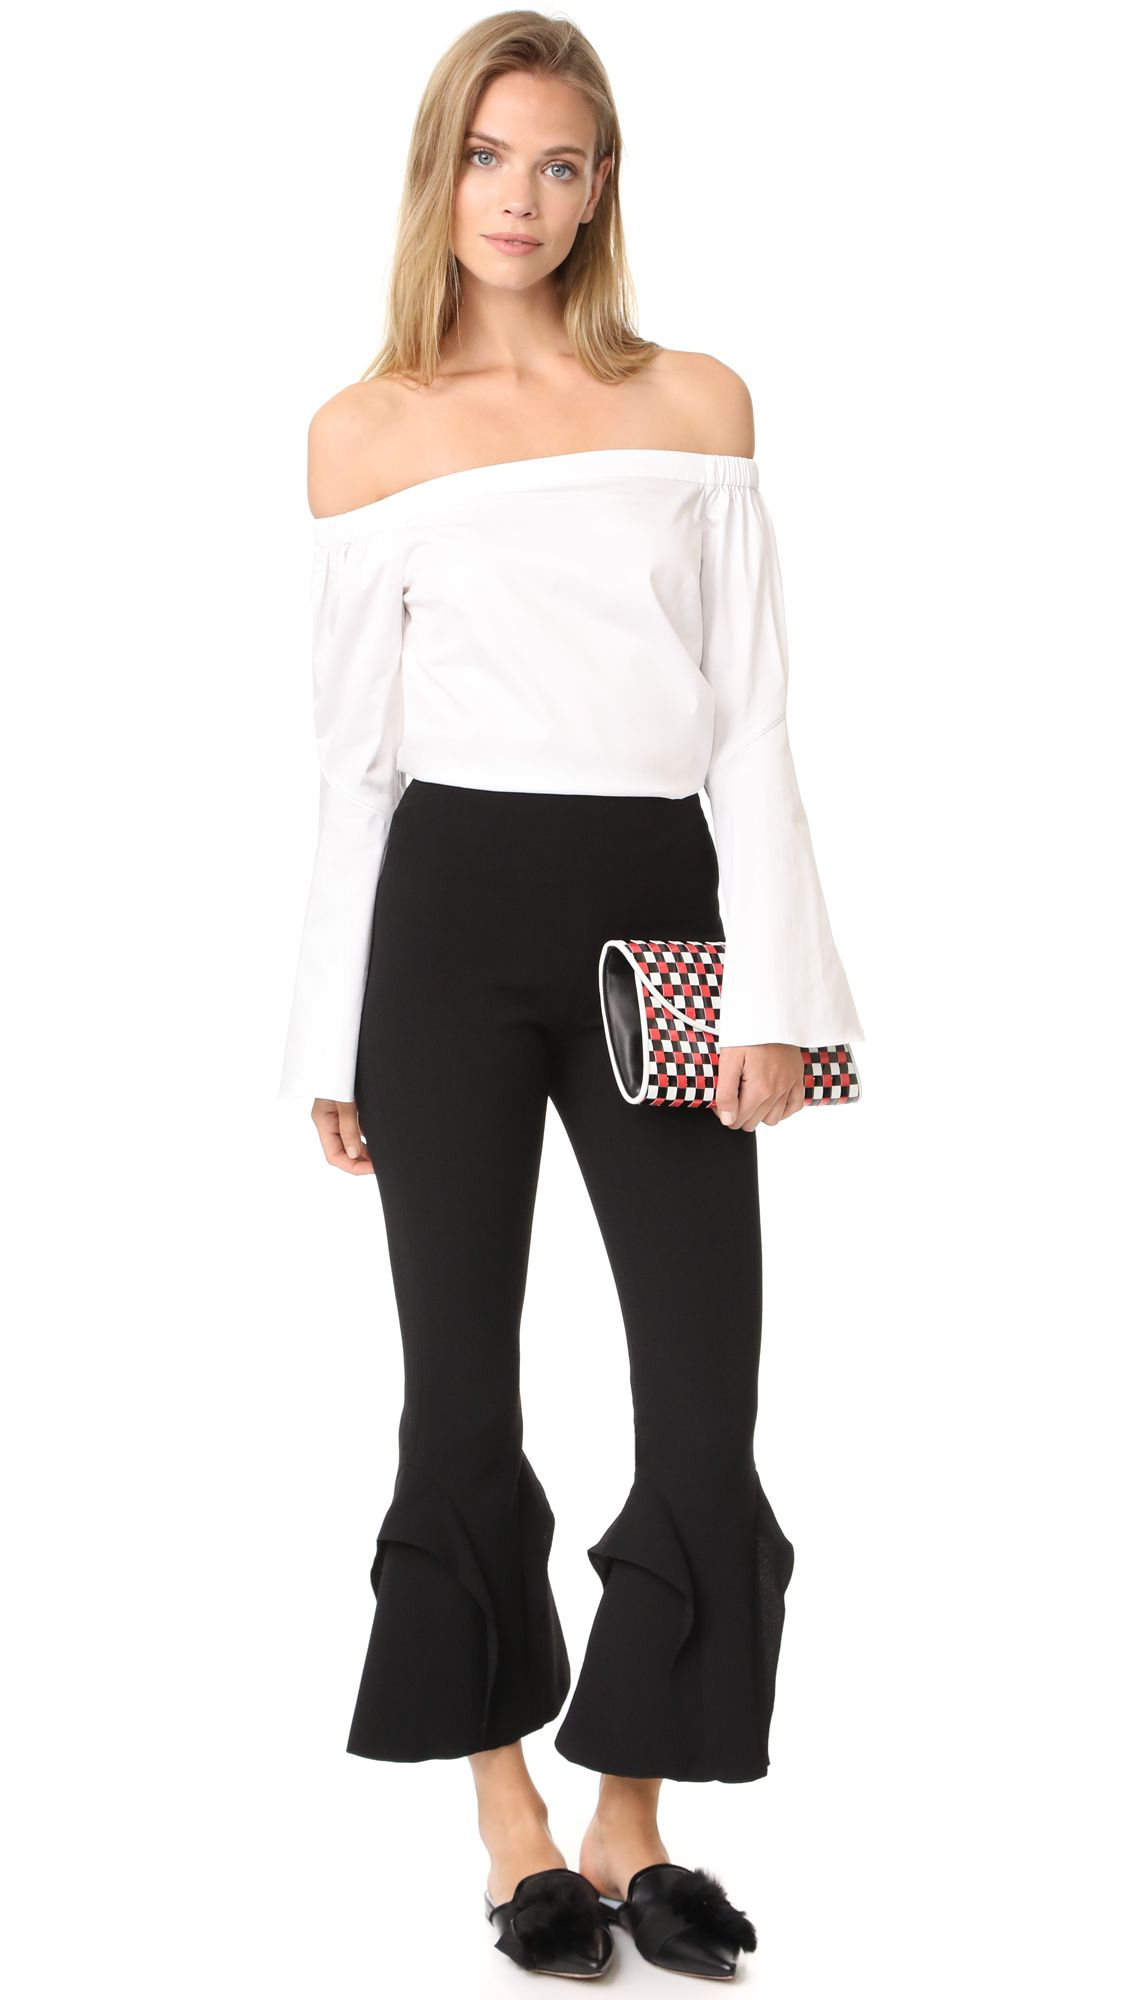 A model in a white top and black frilled pants